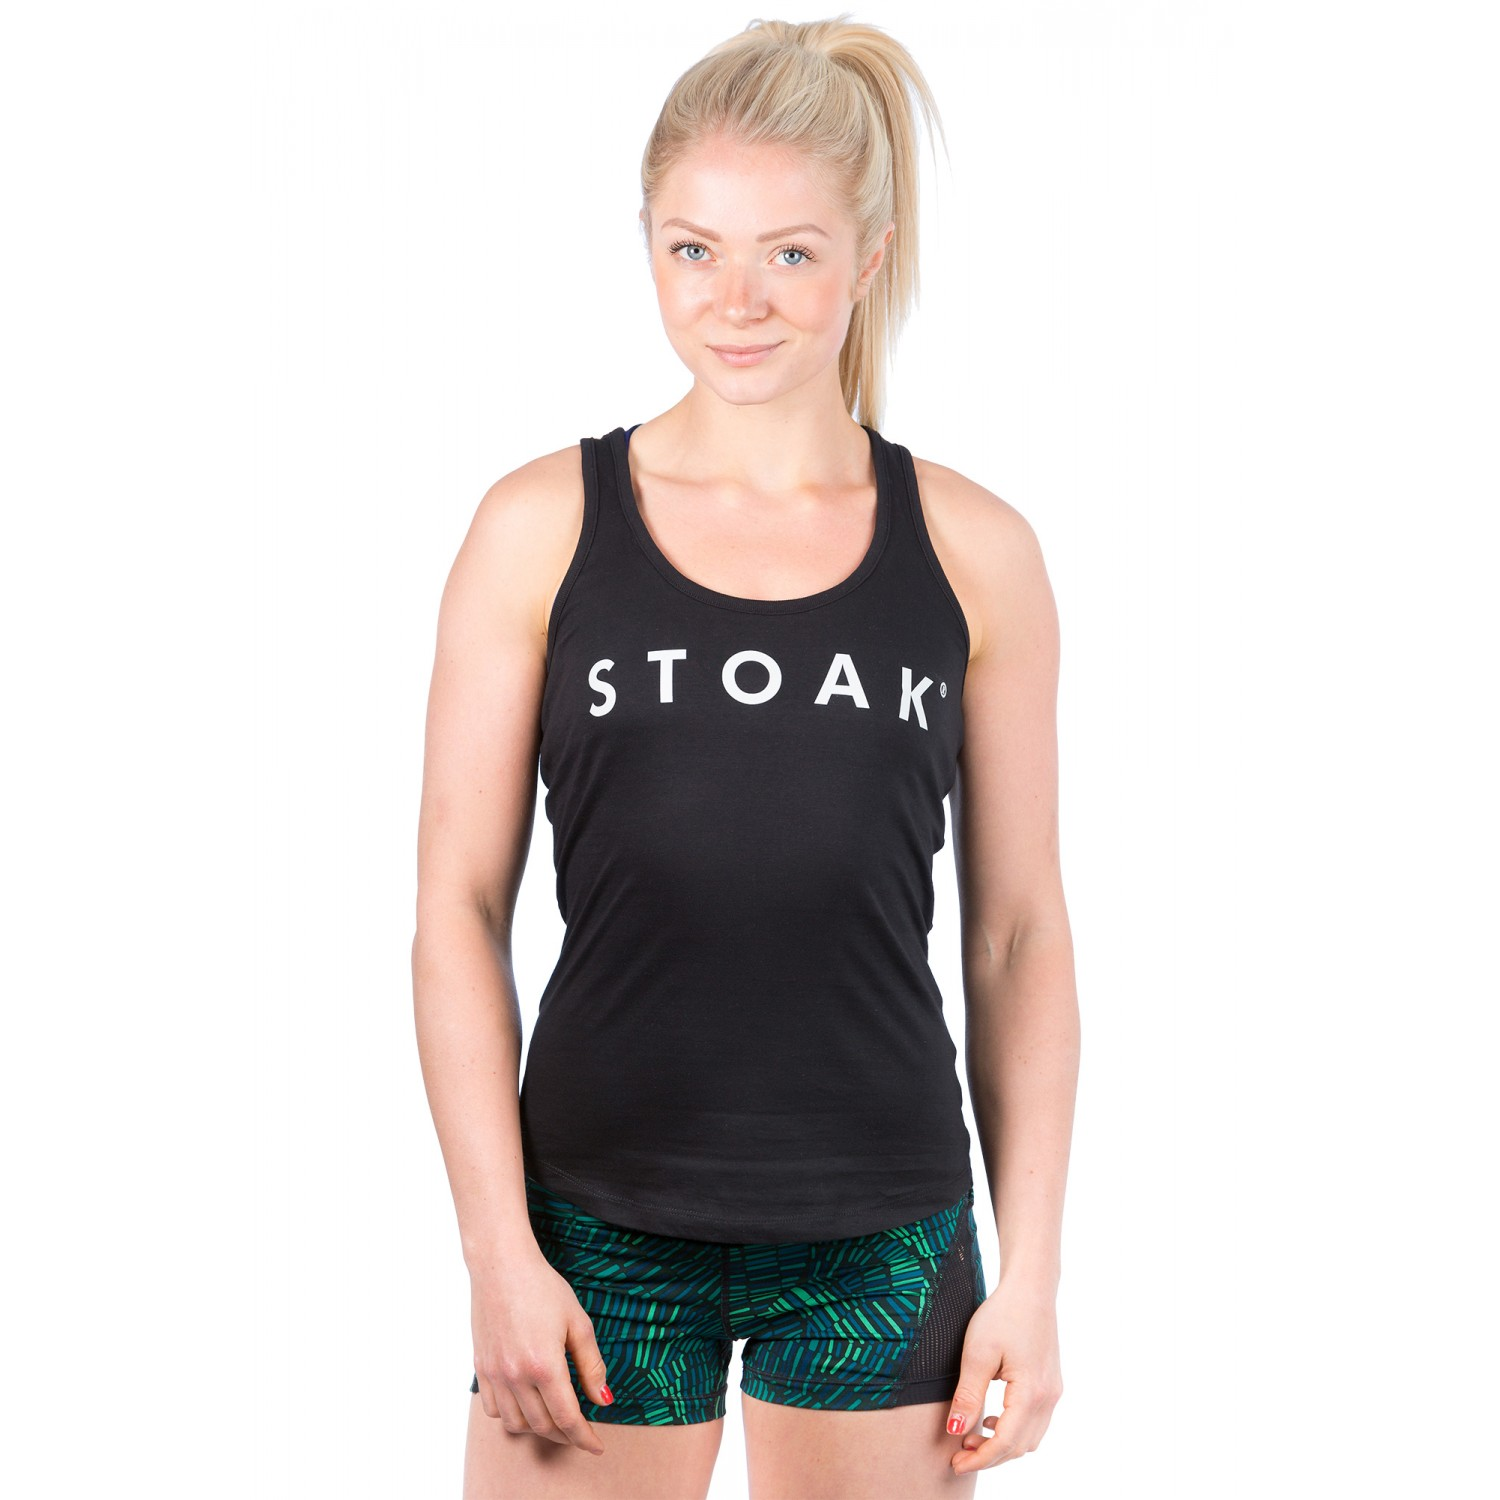 STOAK CARBON Tanktop